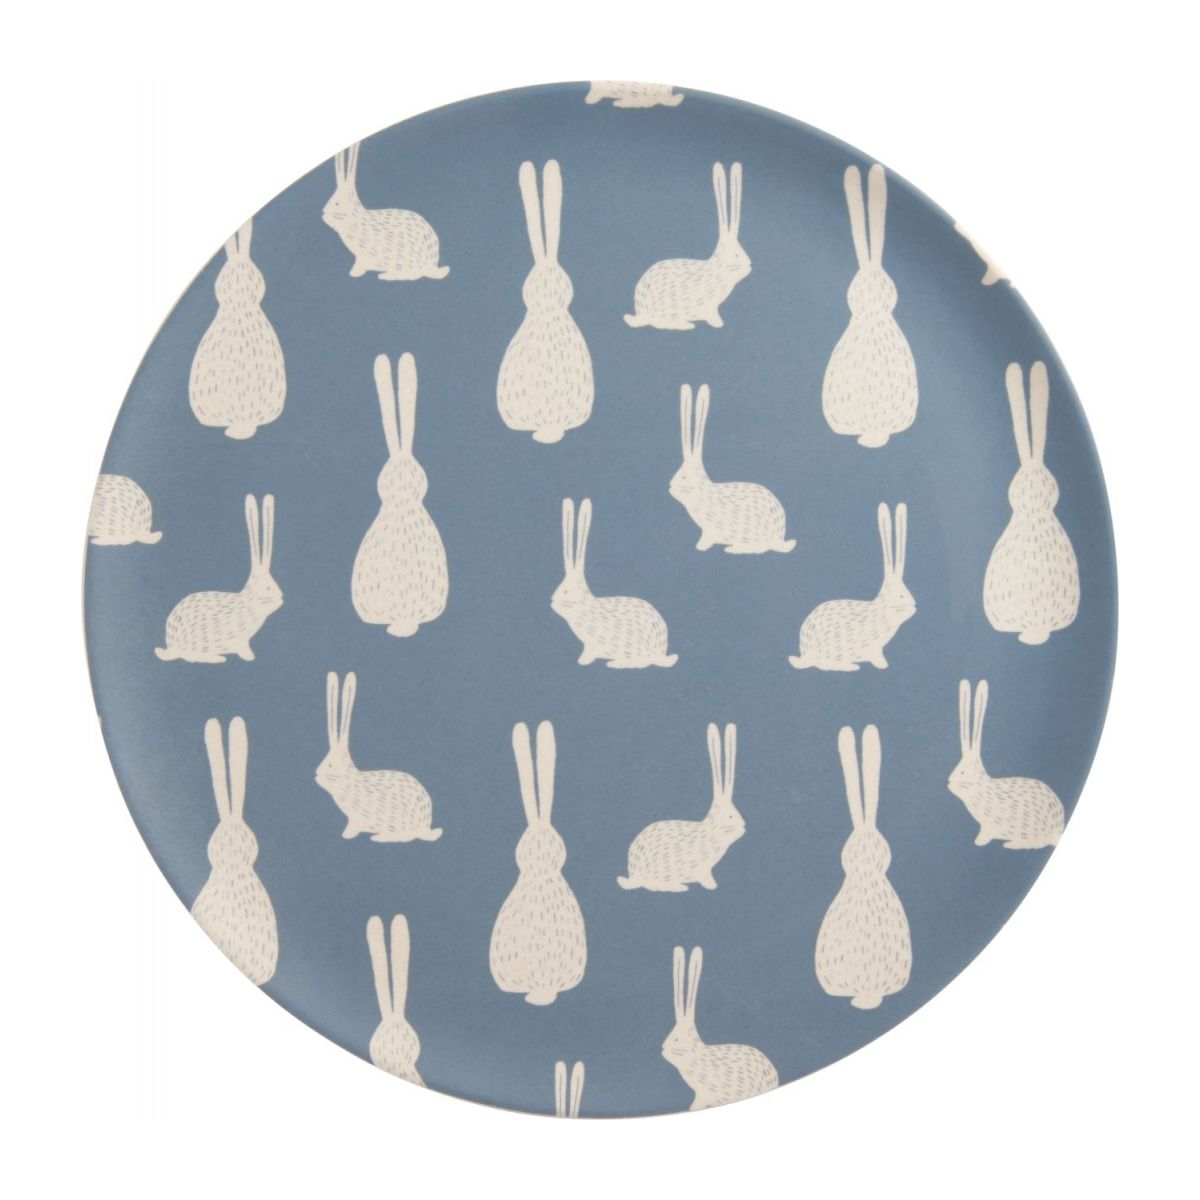 Flat plate, blue with bunny pattern n°1